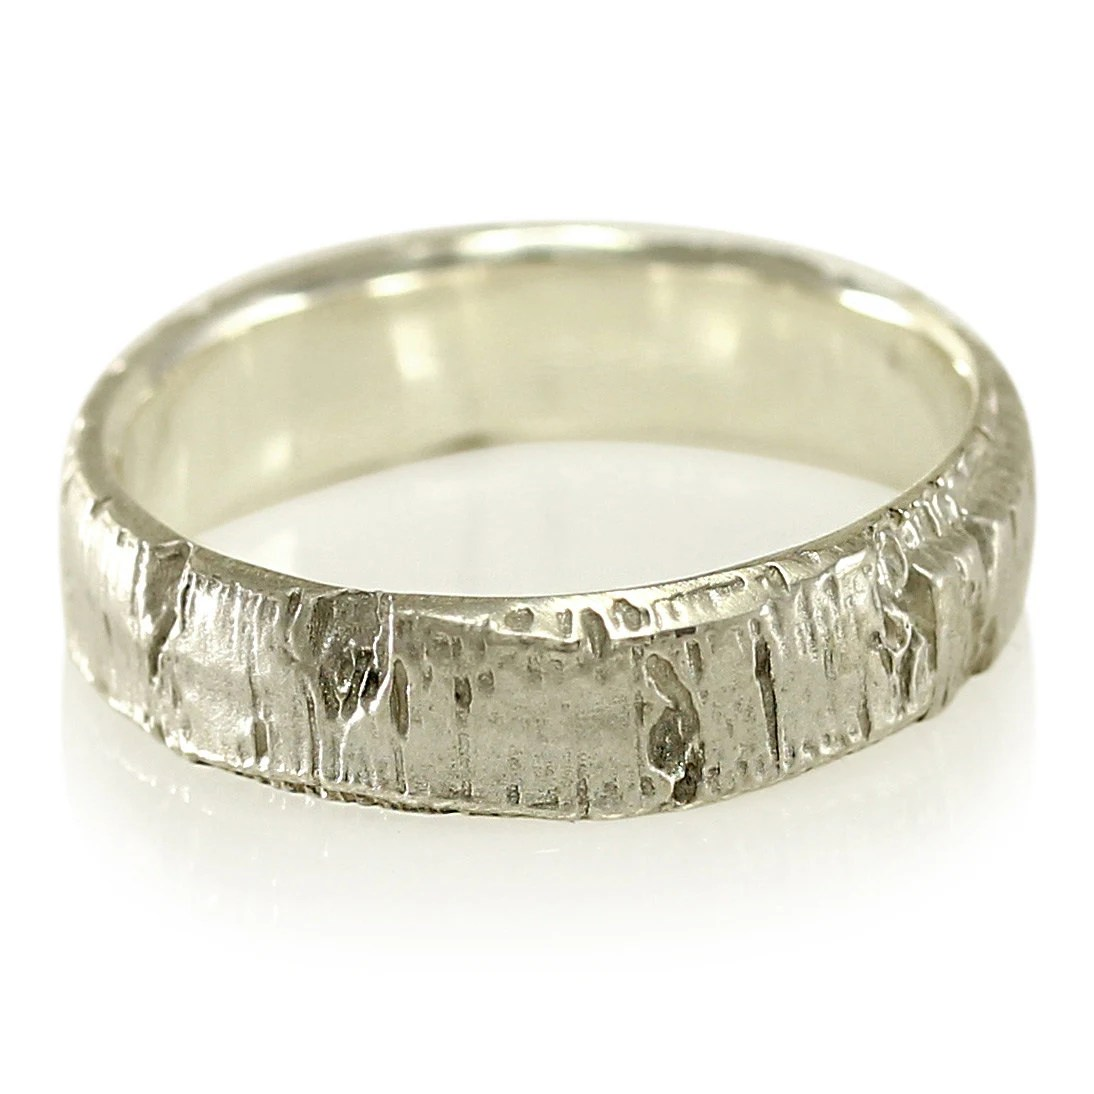 Aspen Tree Bark Wedding Band In Recycled Silver Recycled